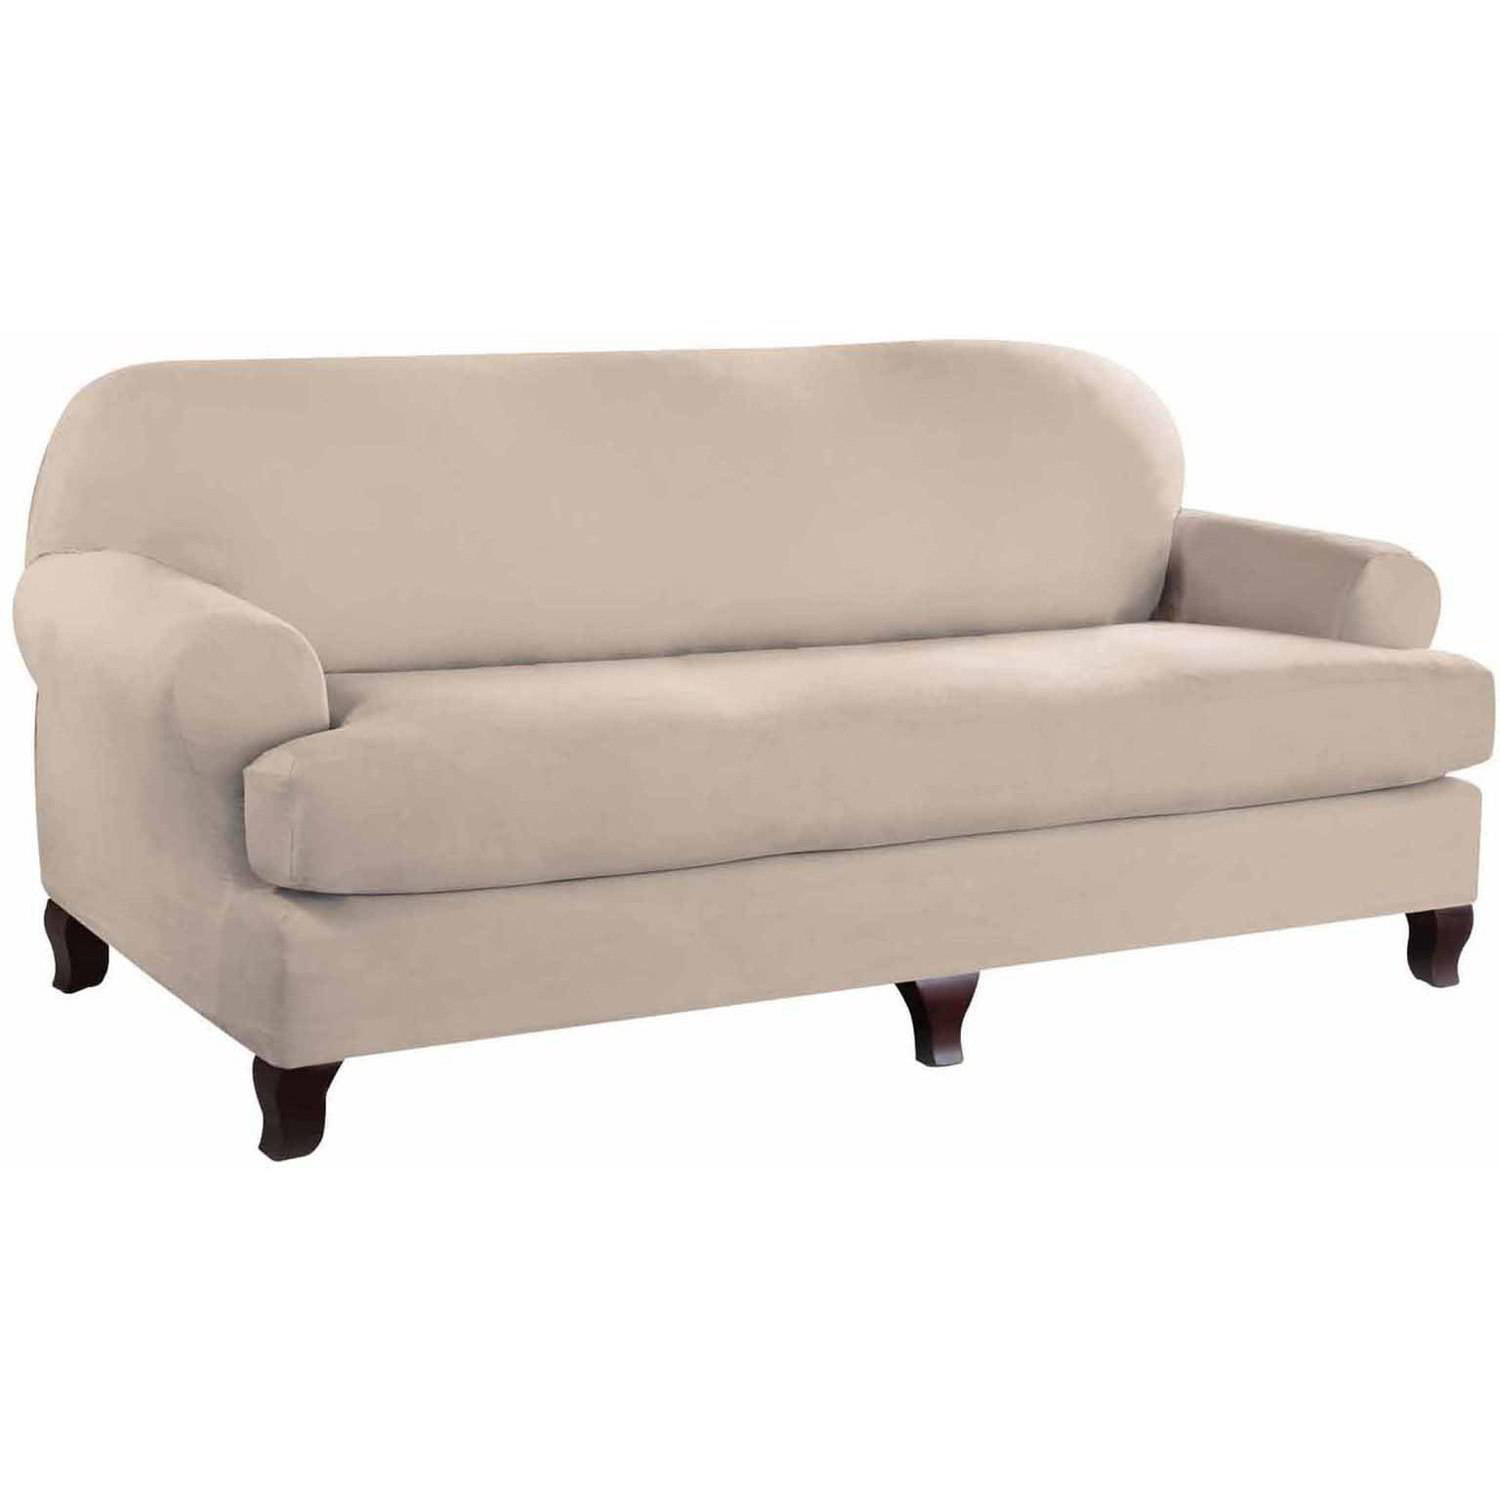 Serta Stretch Fit Microsuede Slipcover, Sofa, 2 Piece T Cushion    Walmart.com